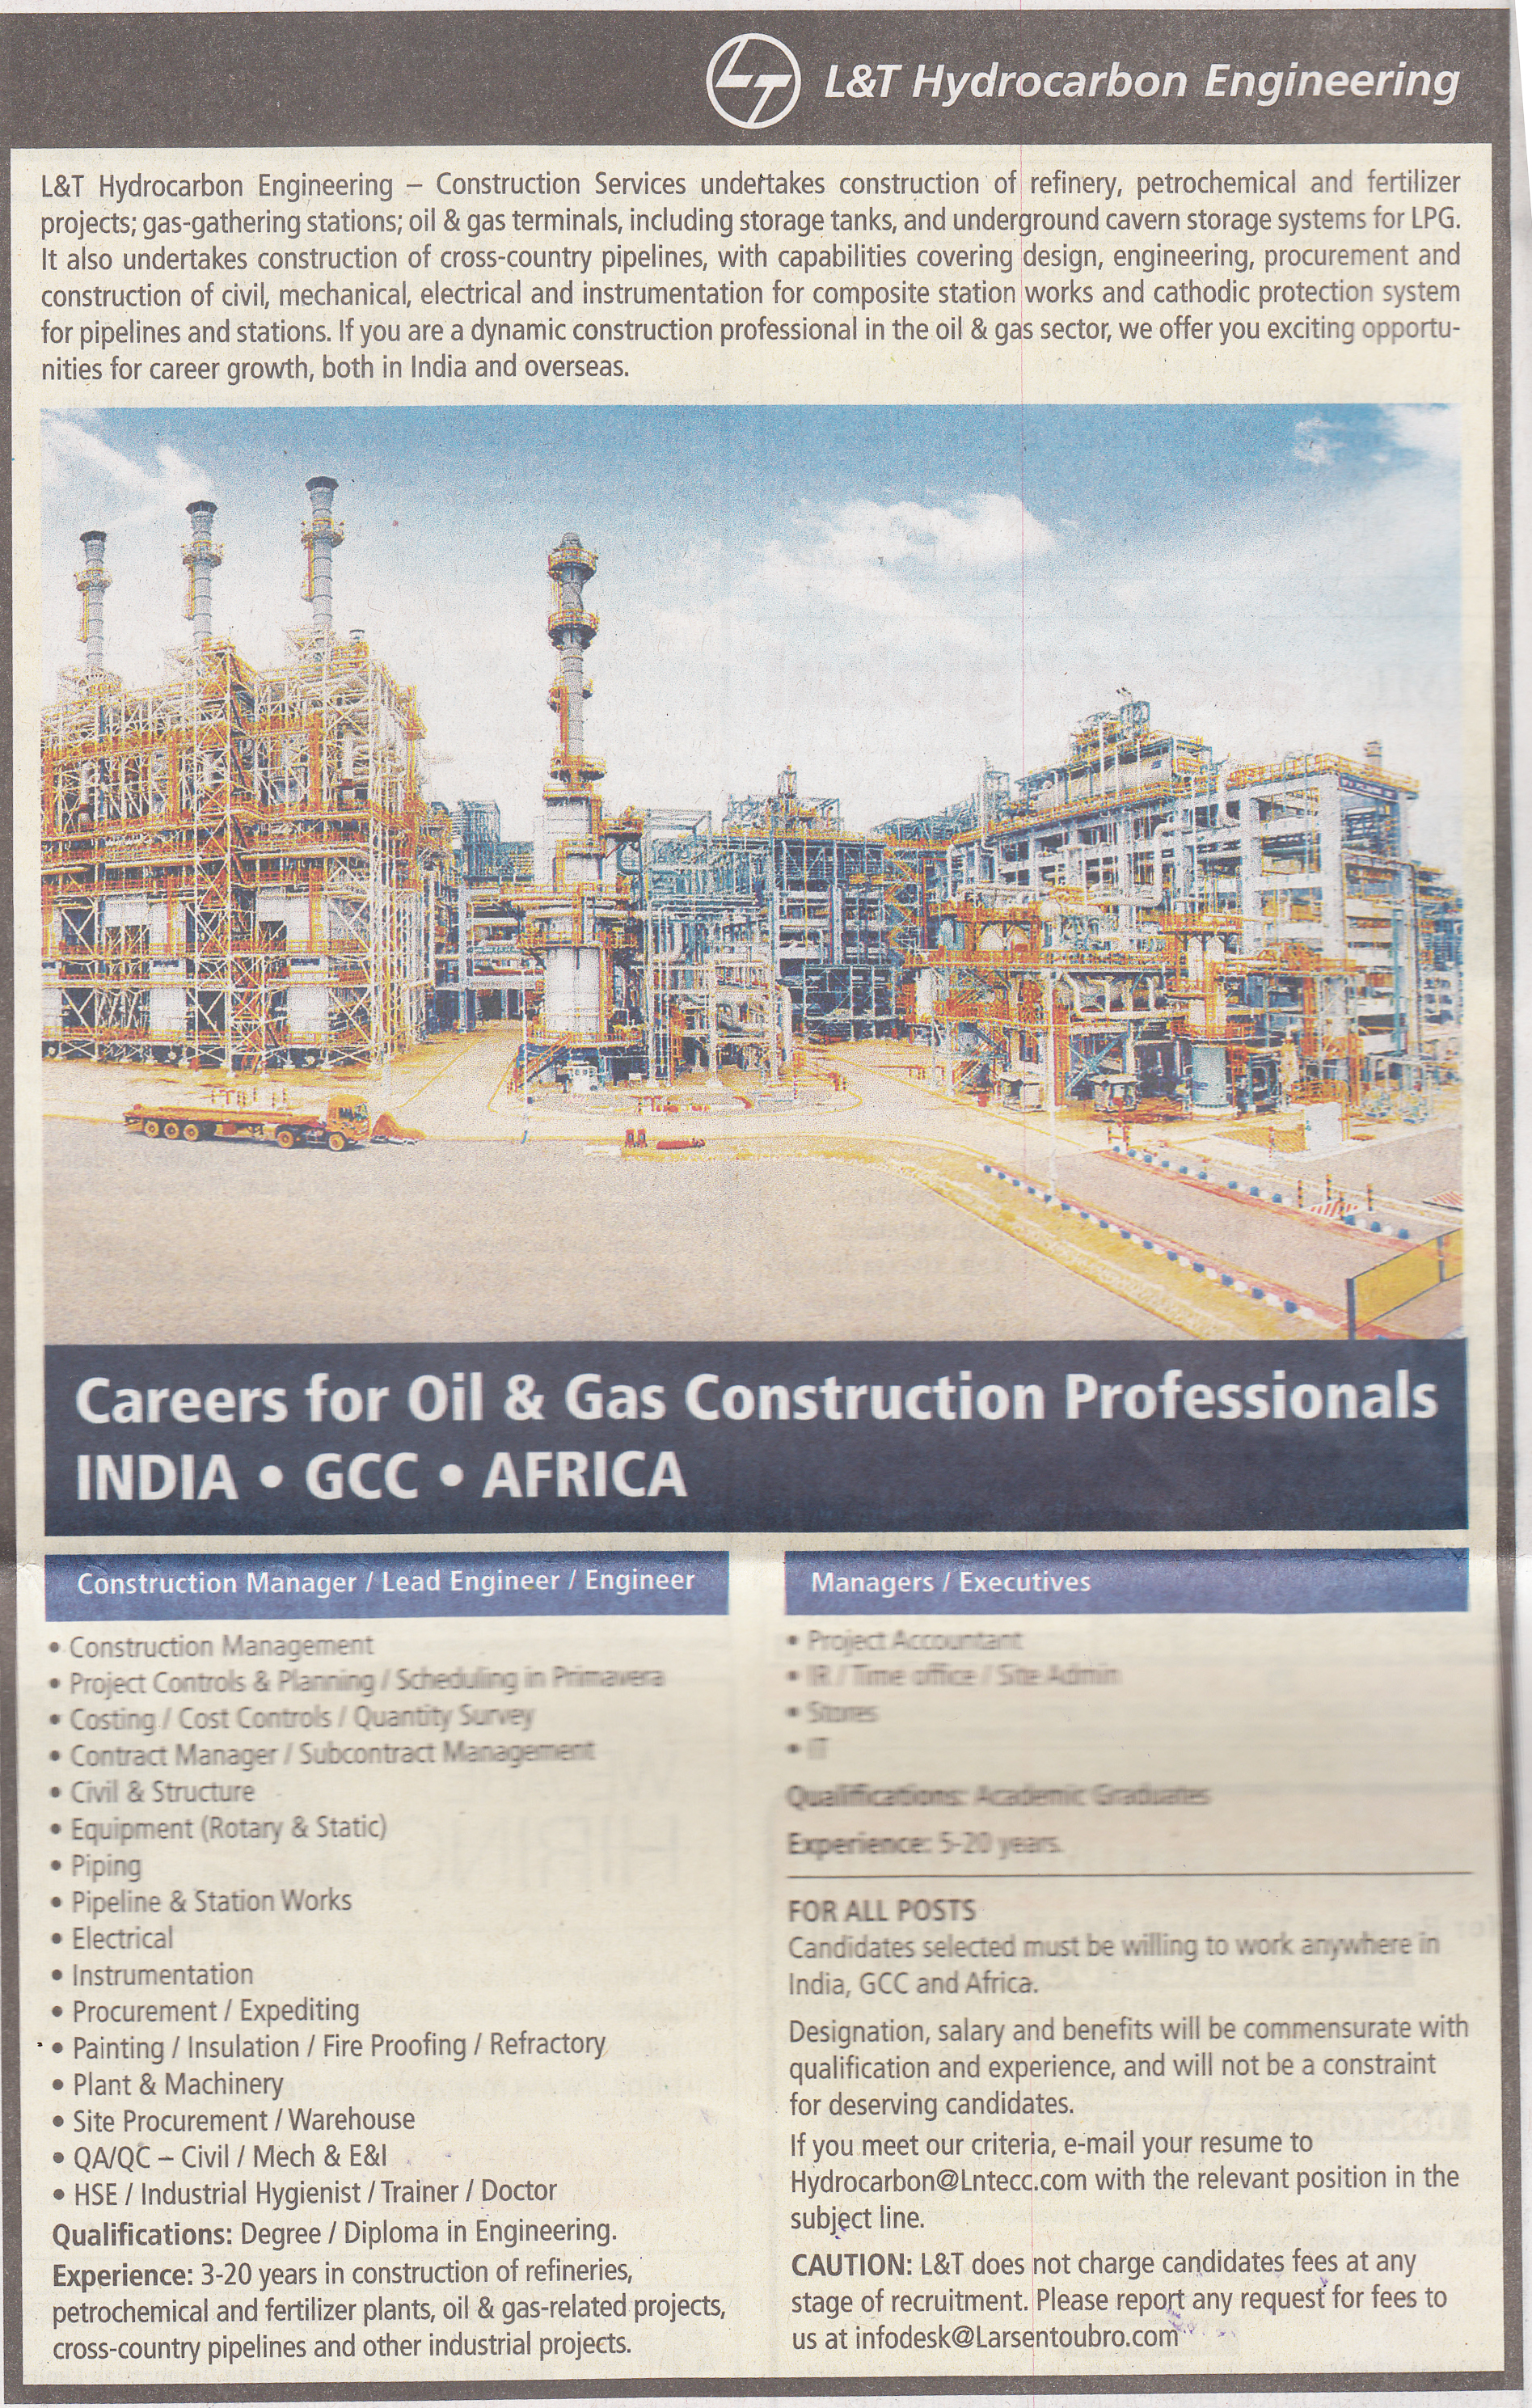 Openings At L Amp T Hydrocarbon Engineering Nhit Best